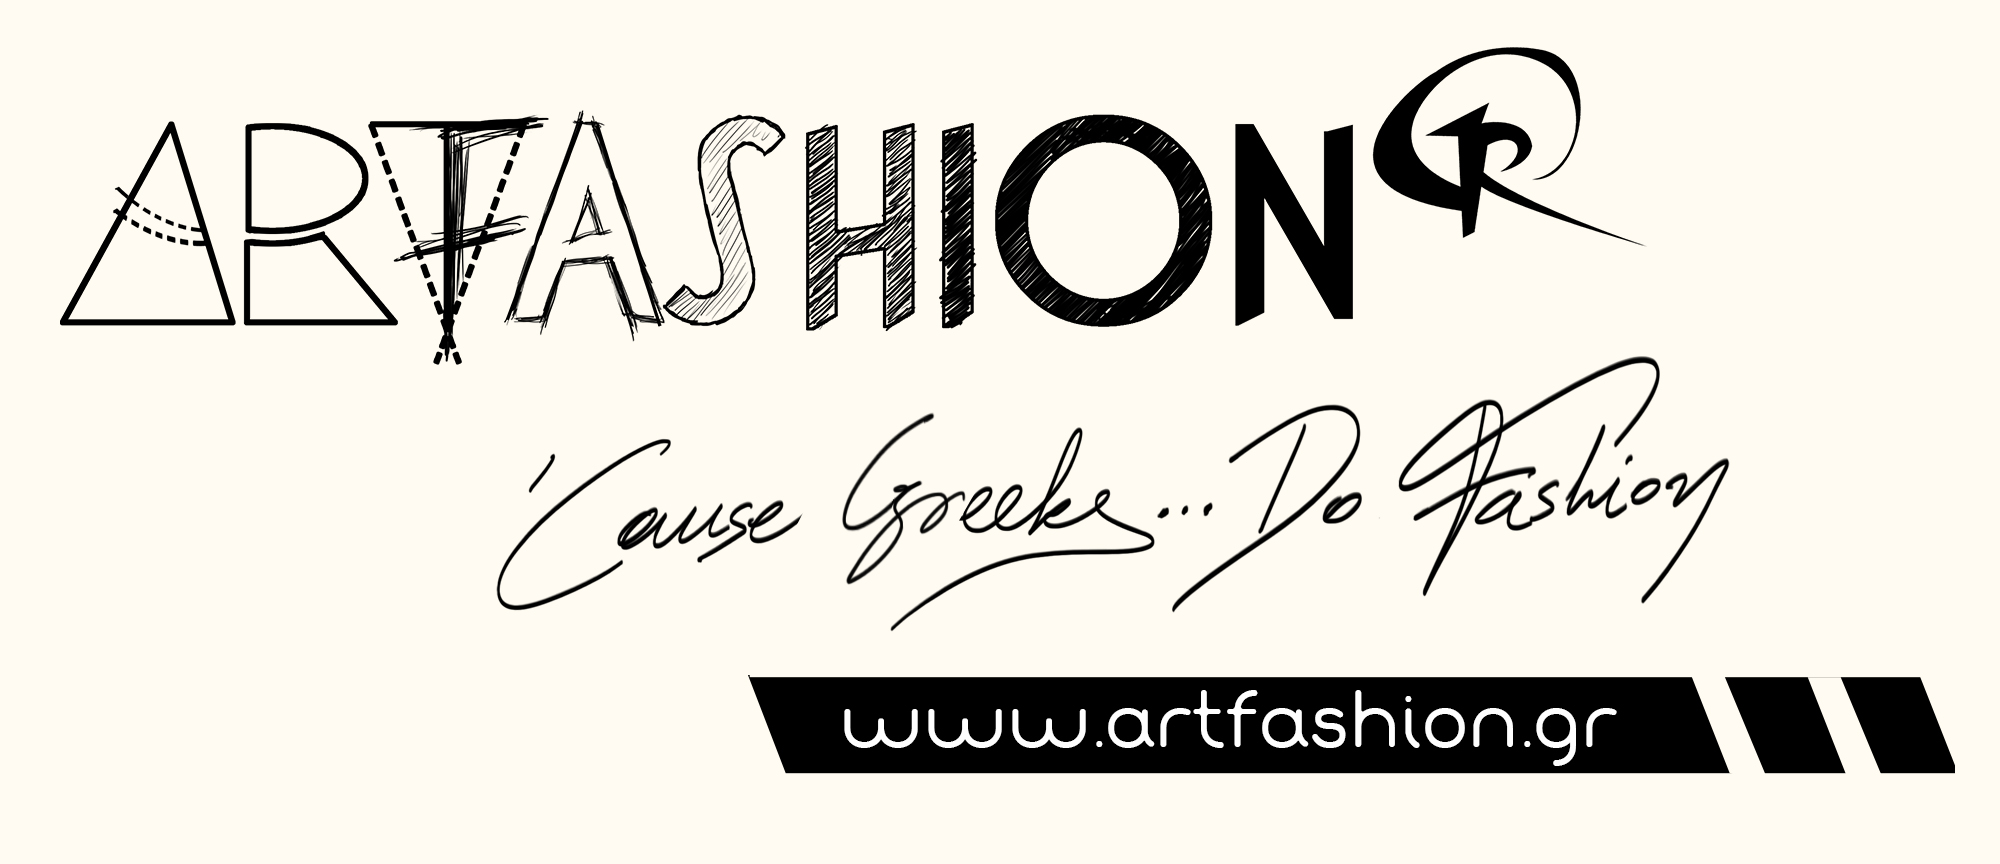 Artfashion.gr